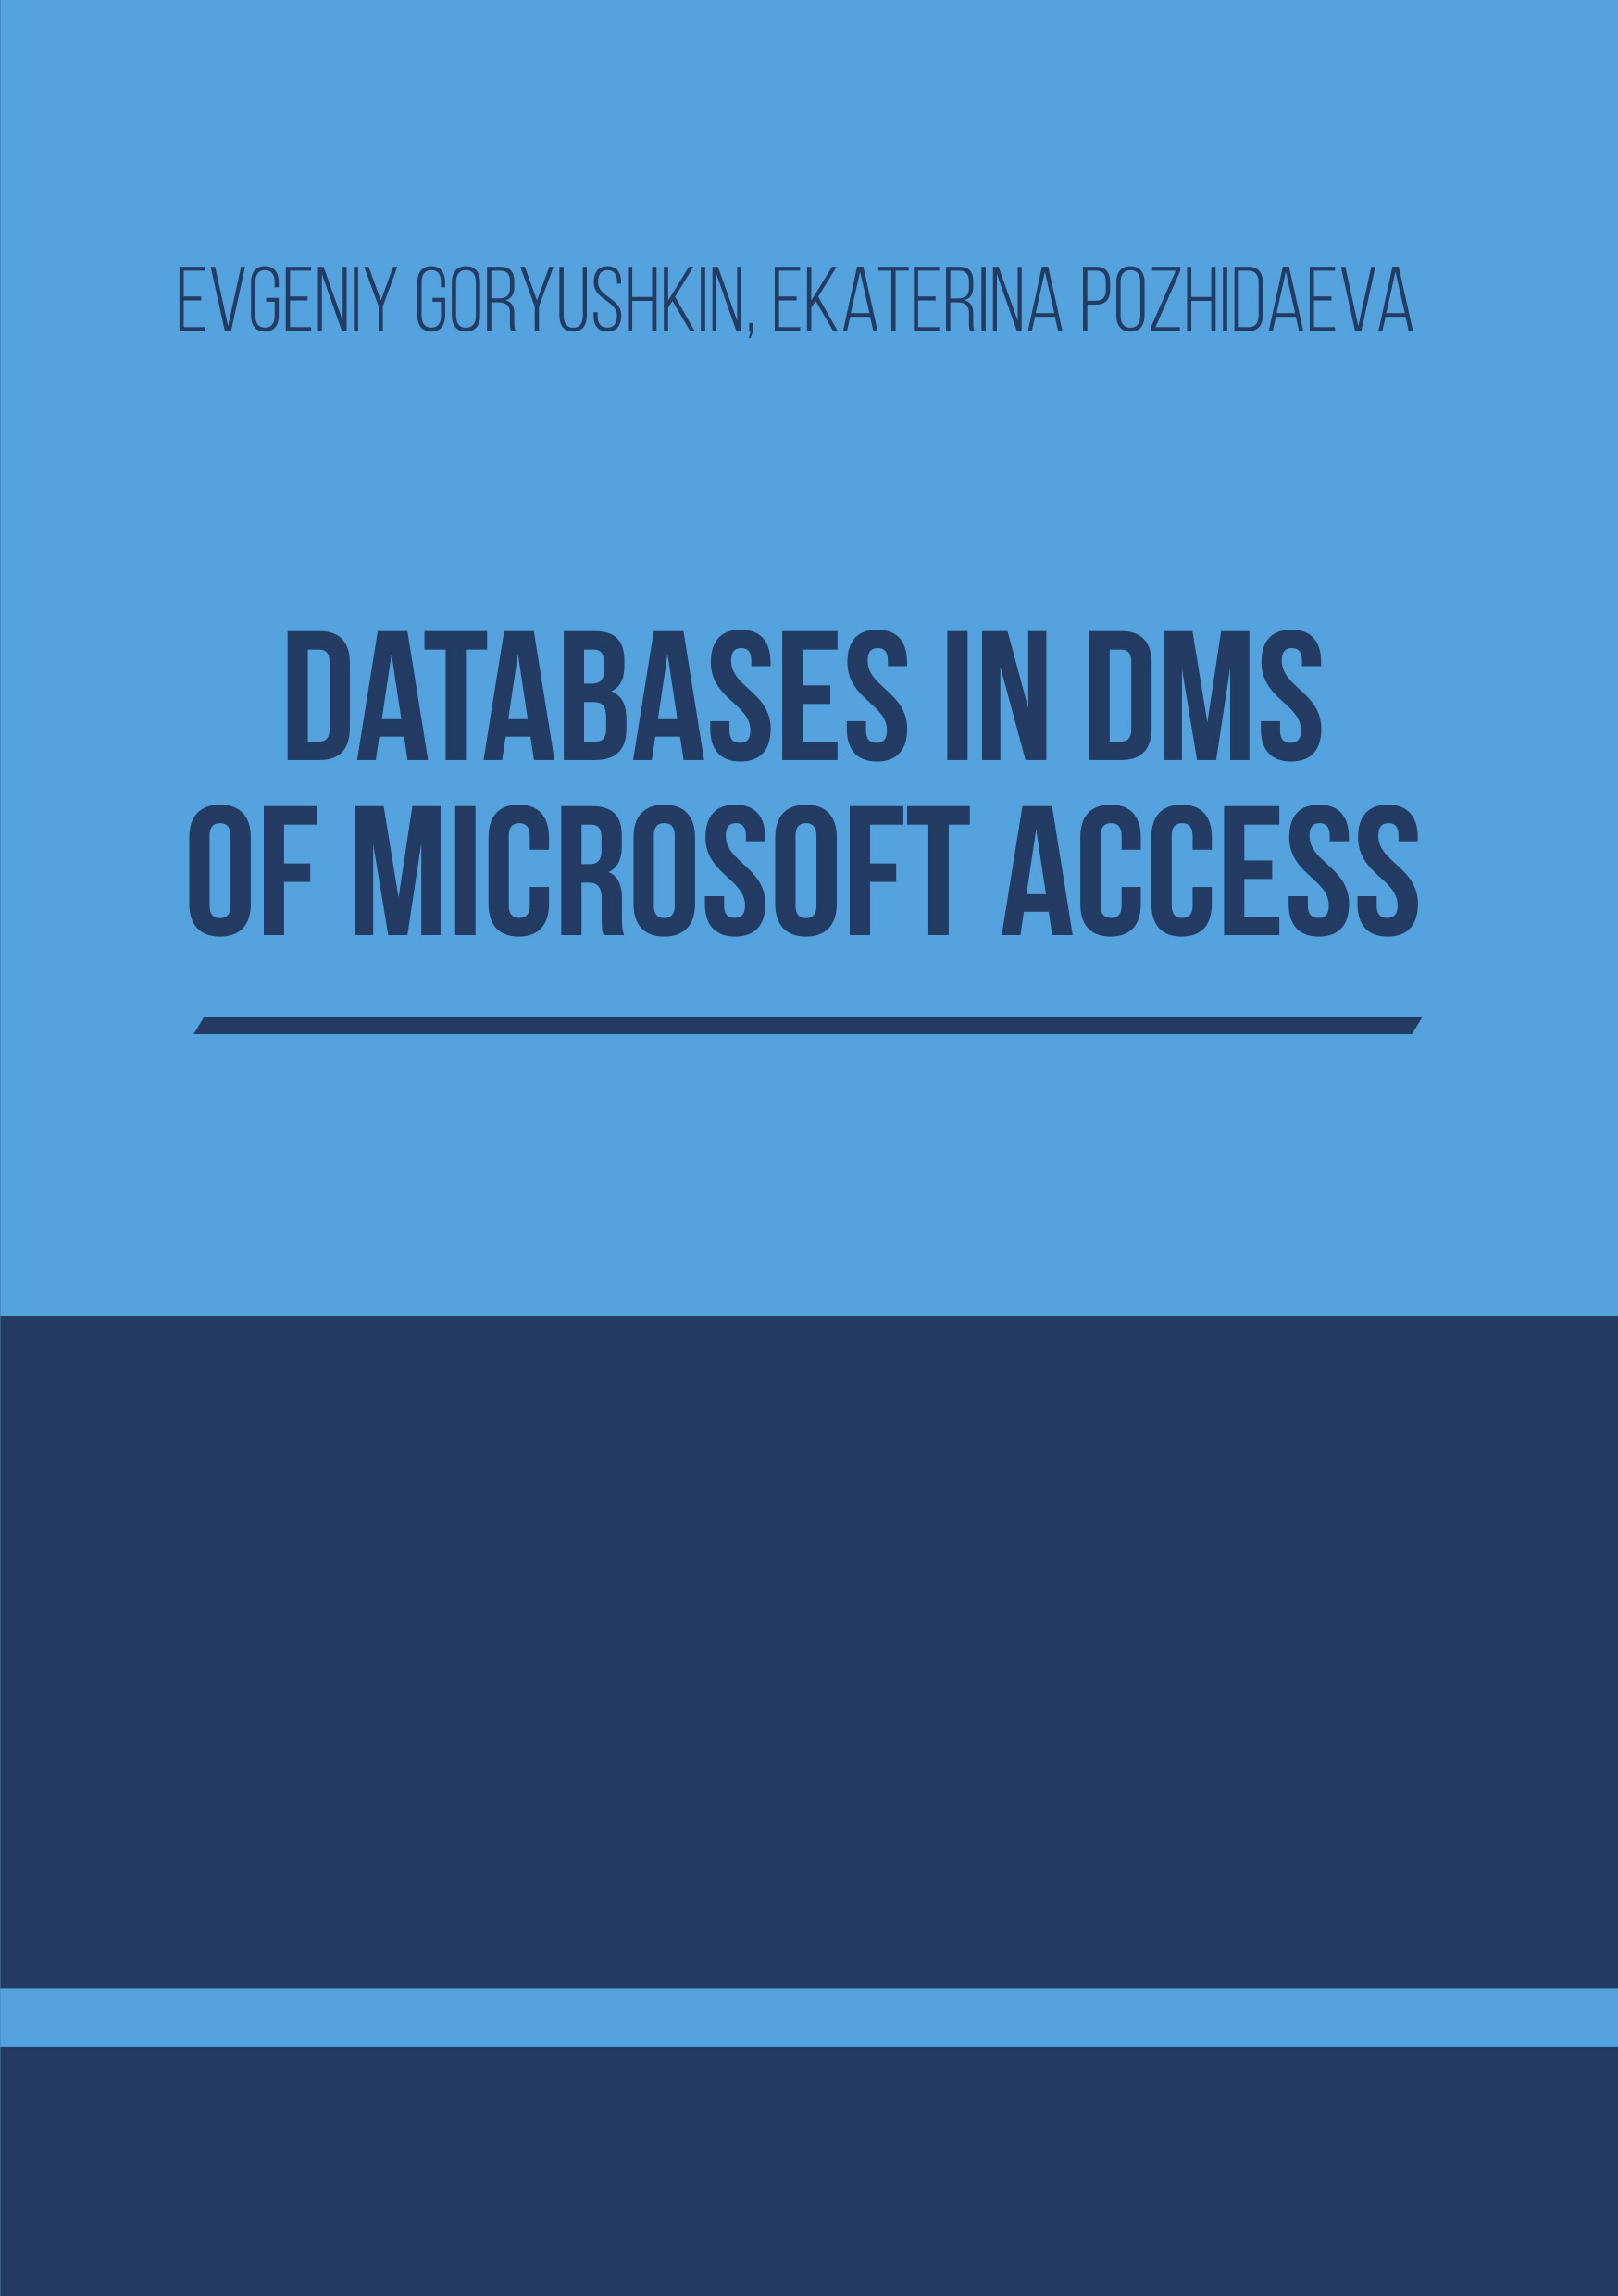 Evgeniy Goryushkin Databases in DMS of Microsoft Access: methodical handbook on computer science